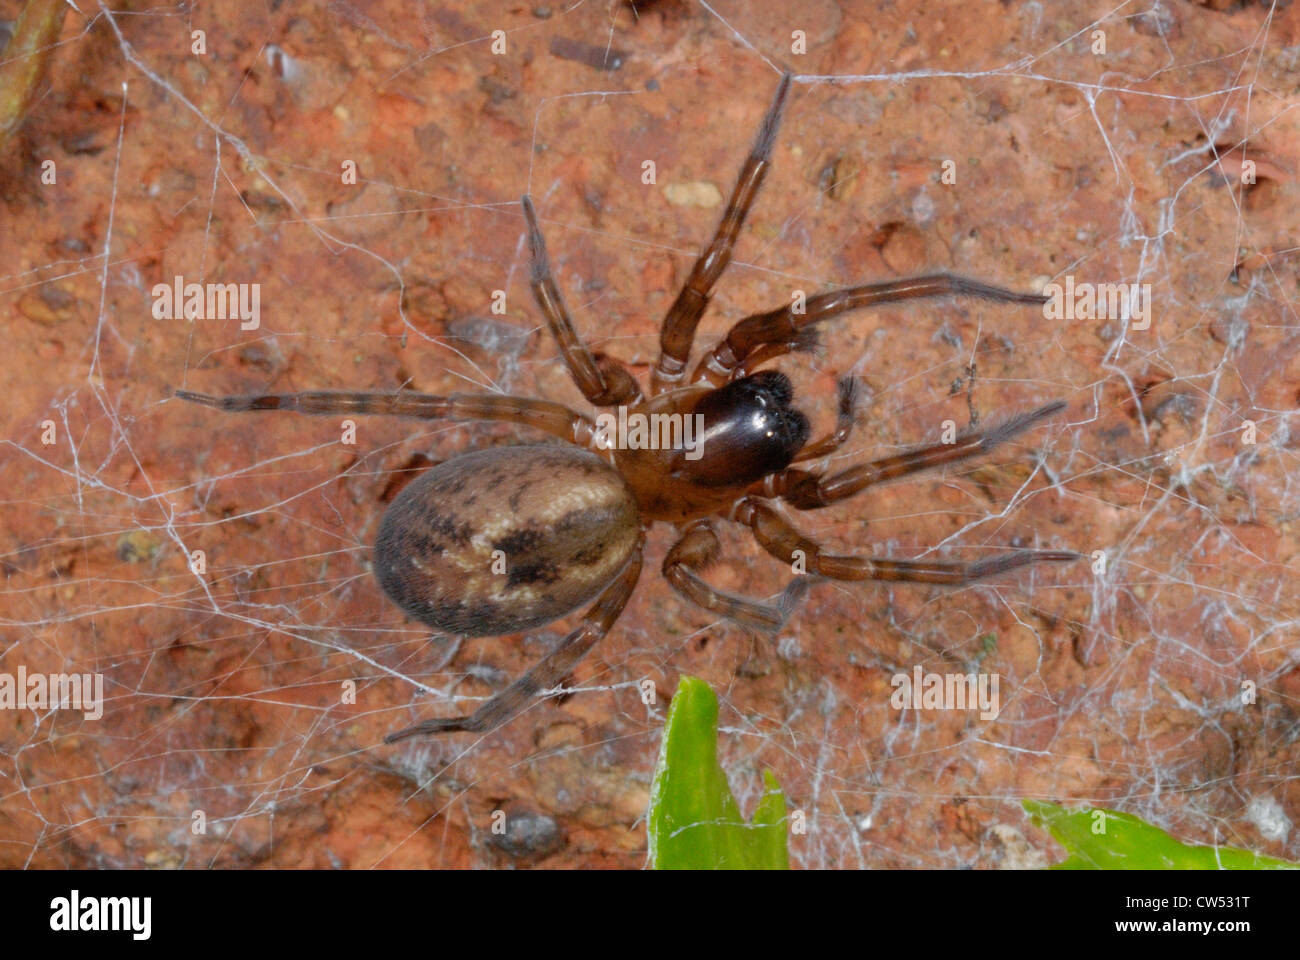 Garden Lace-webbed Spider (Amaurobius similis) on a garden wall - Stock Image